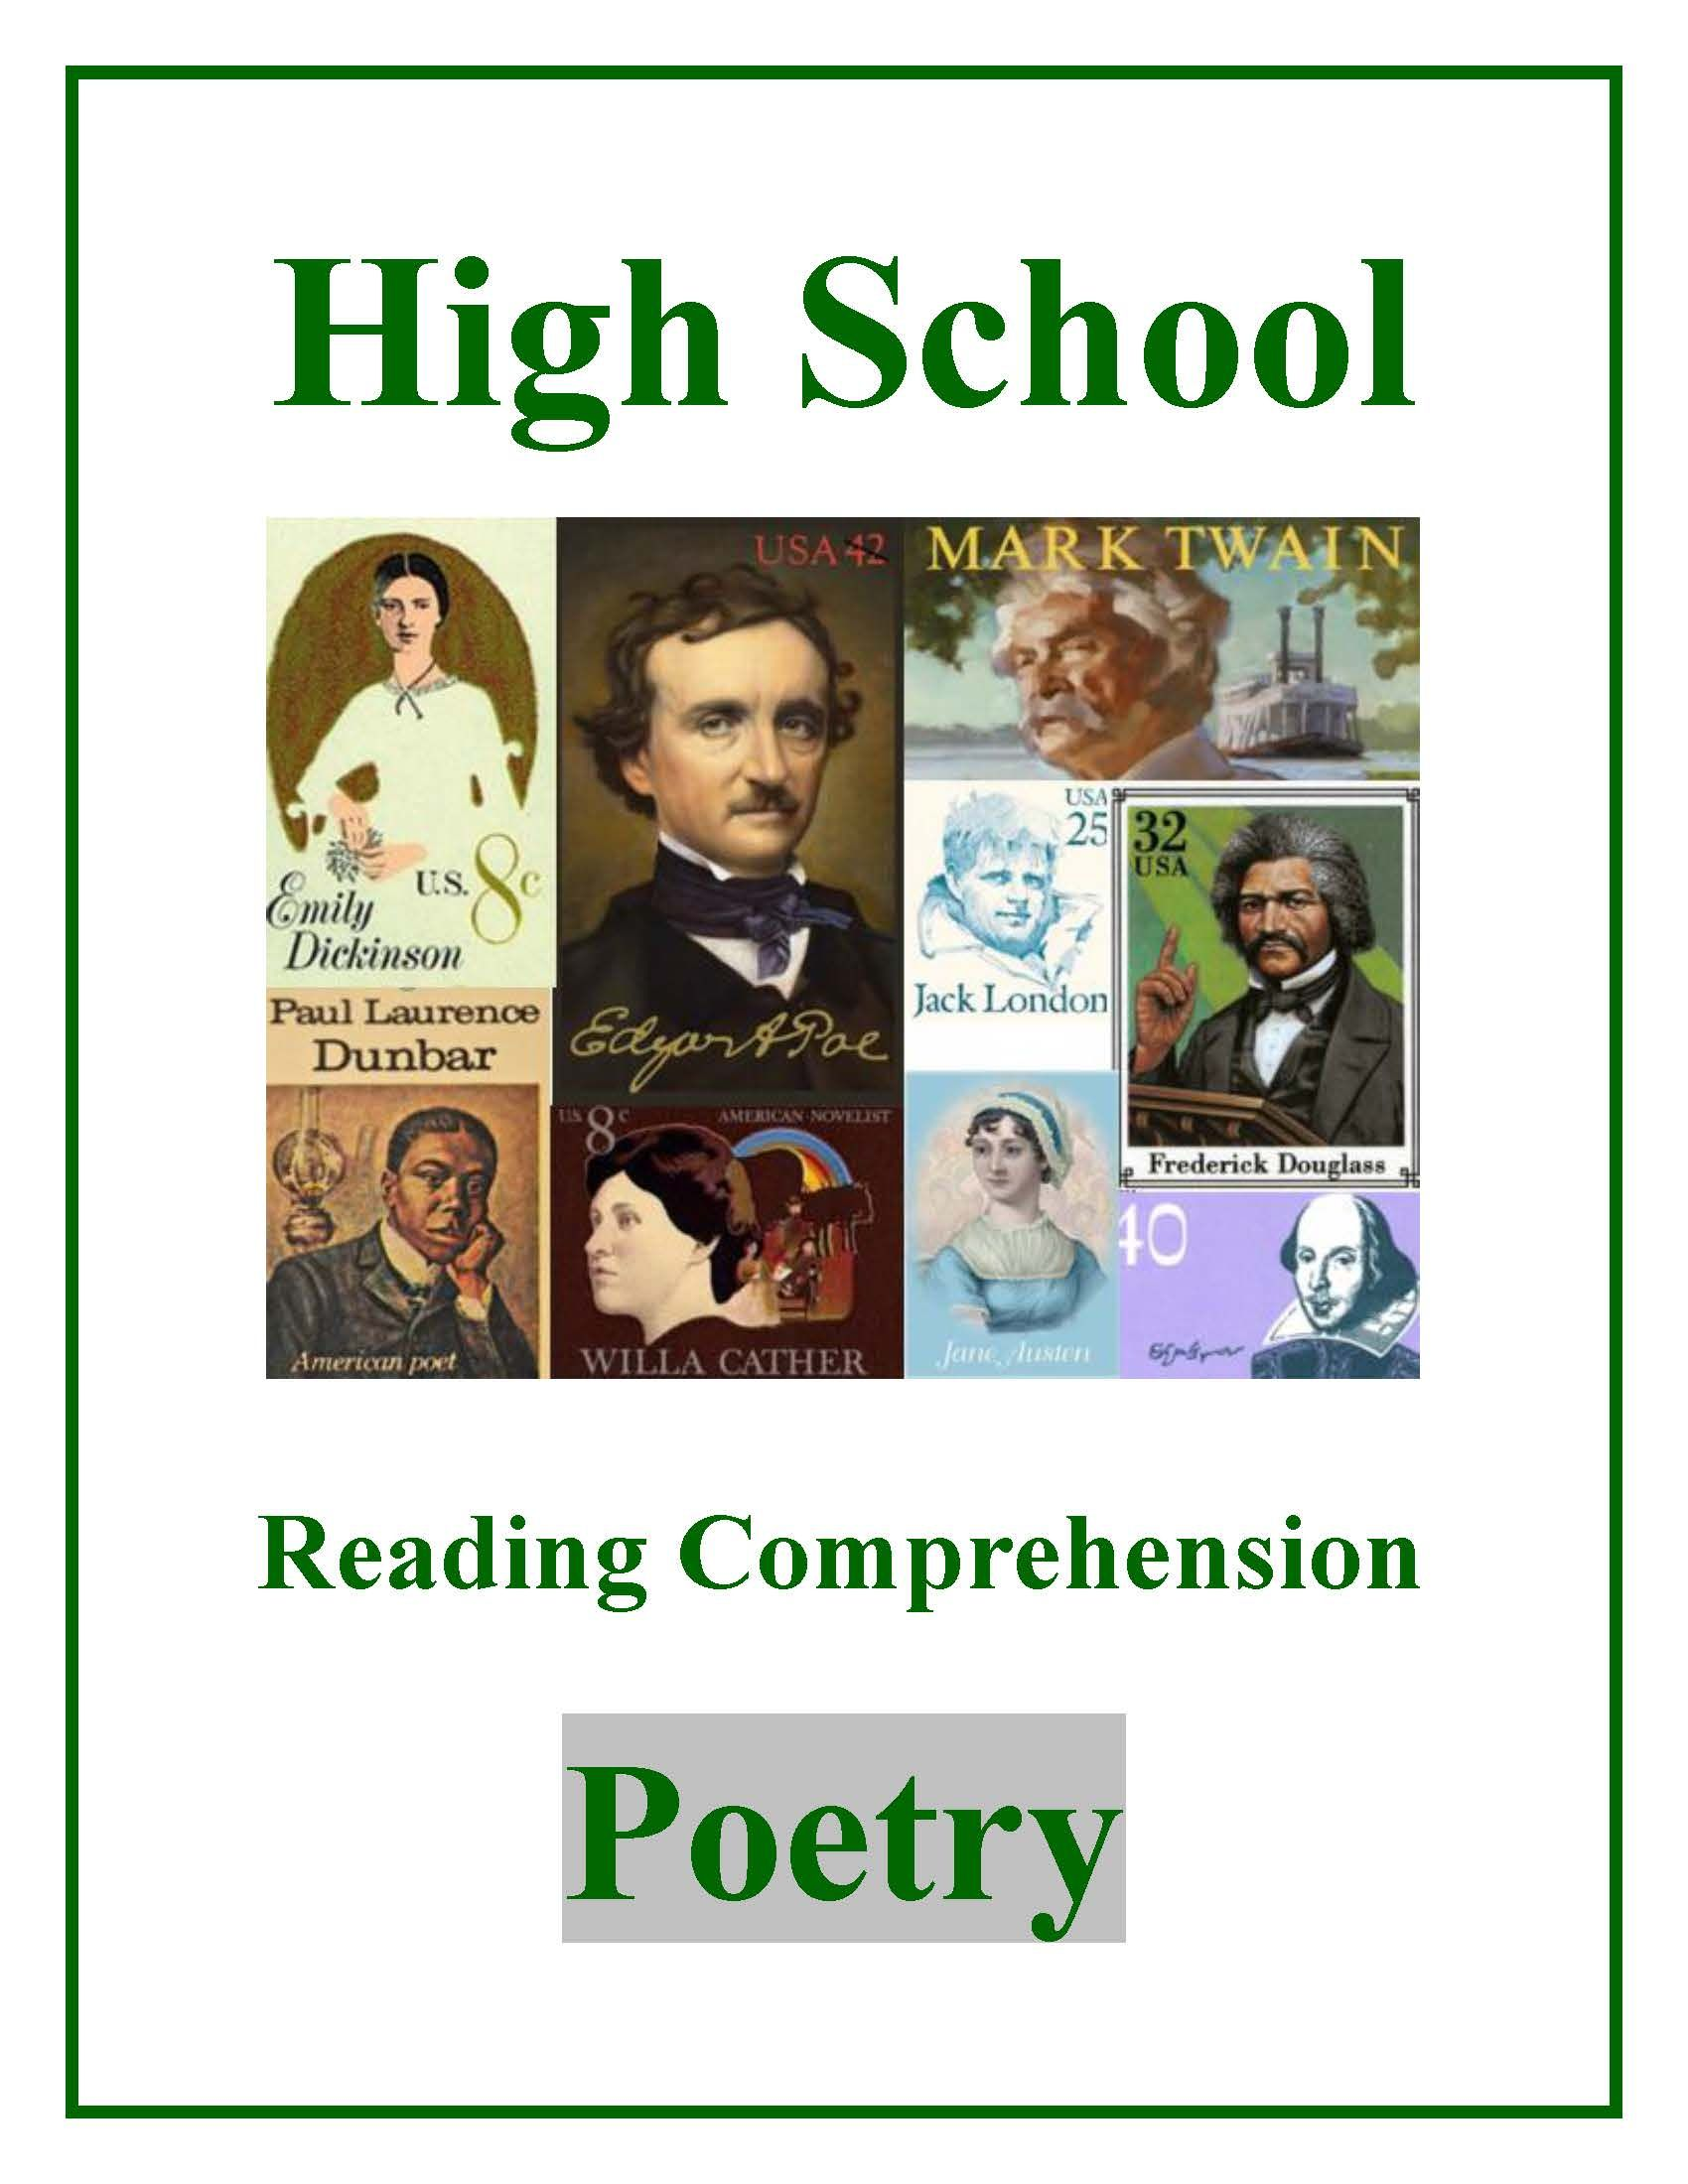 High School Reading Comprehension Poetry